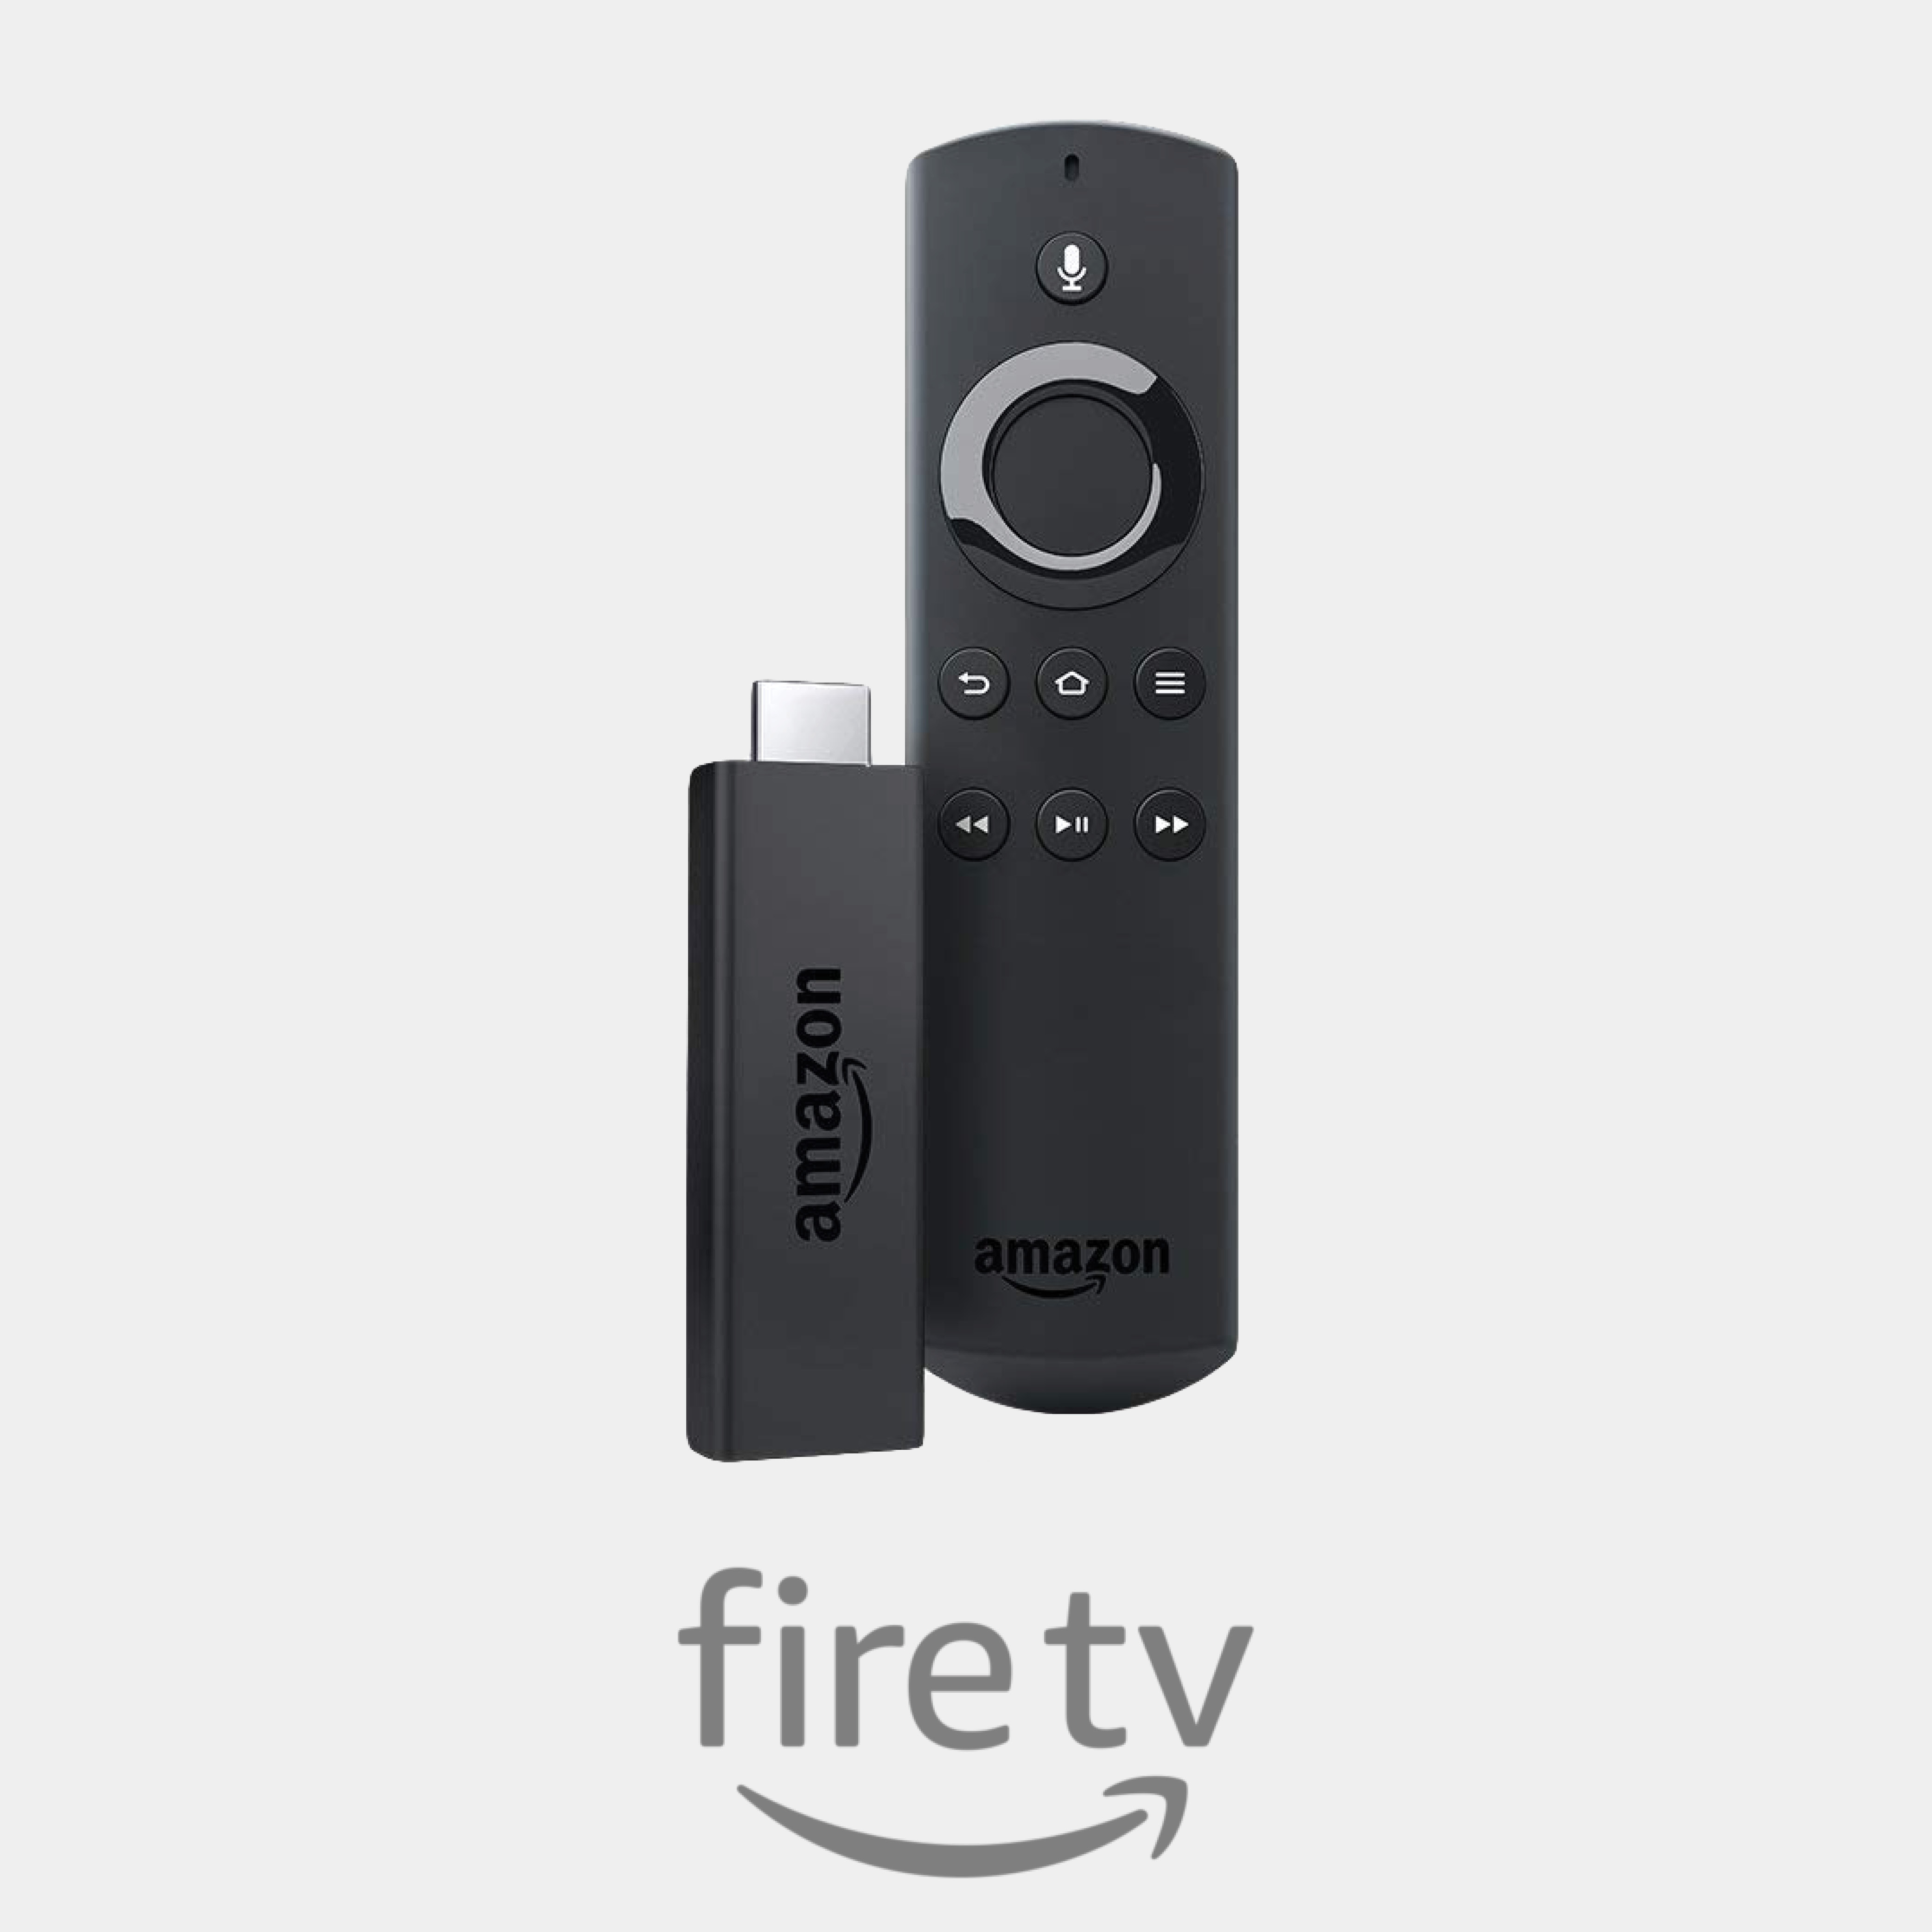 Stream using Amazon Fire TV